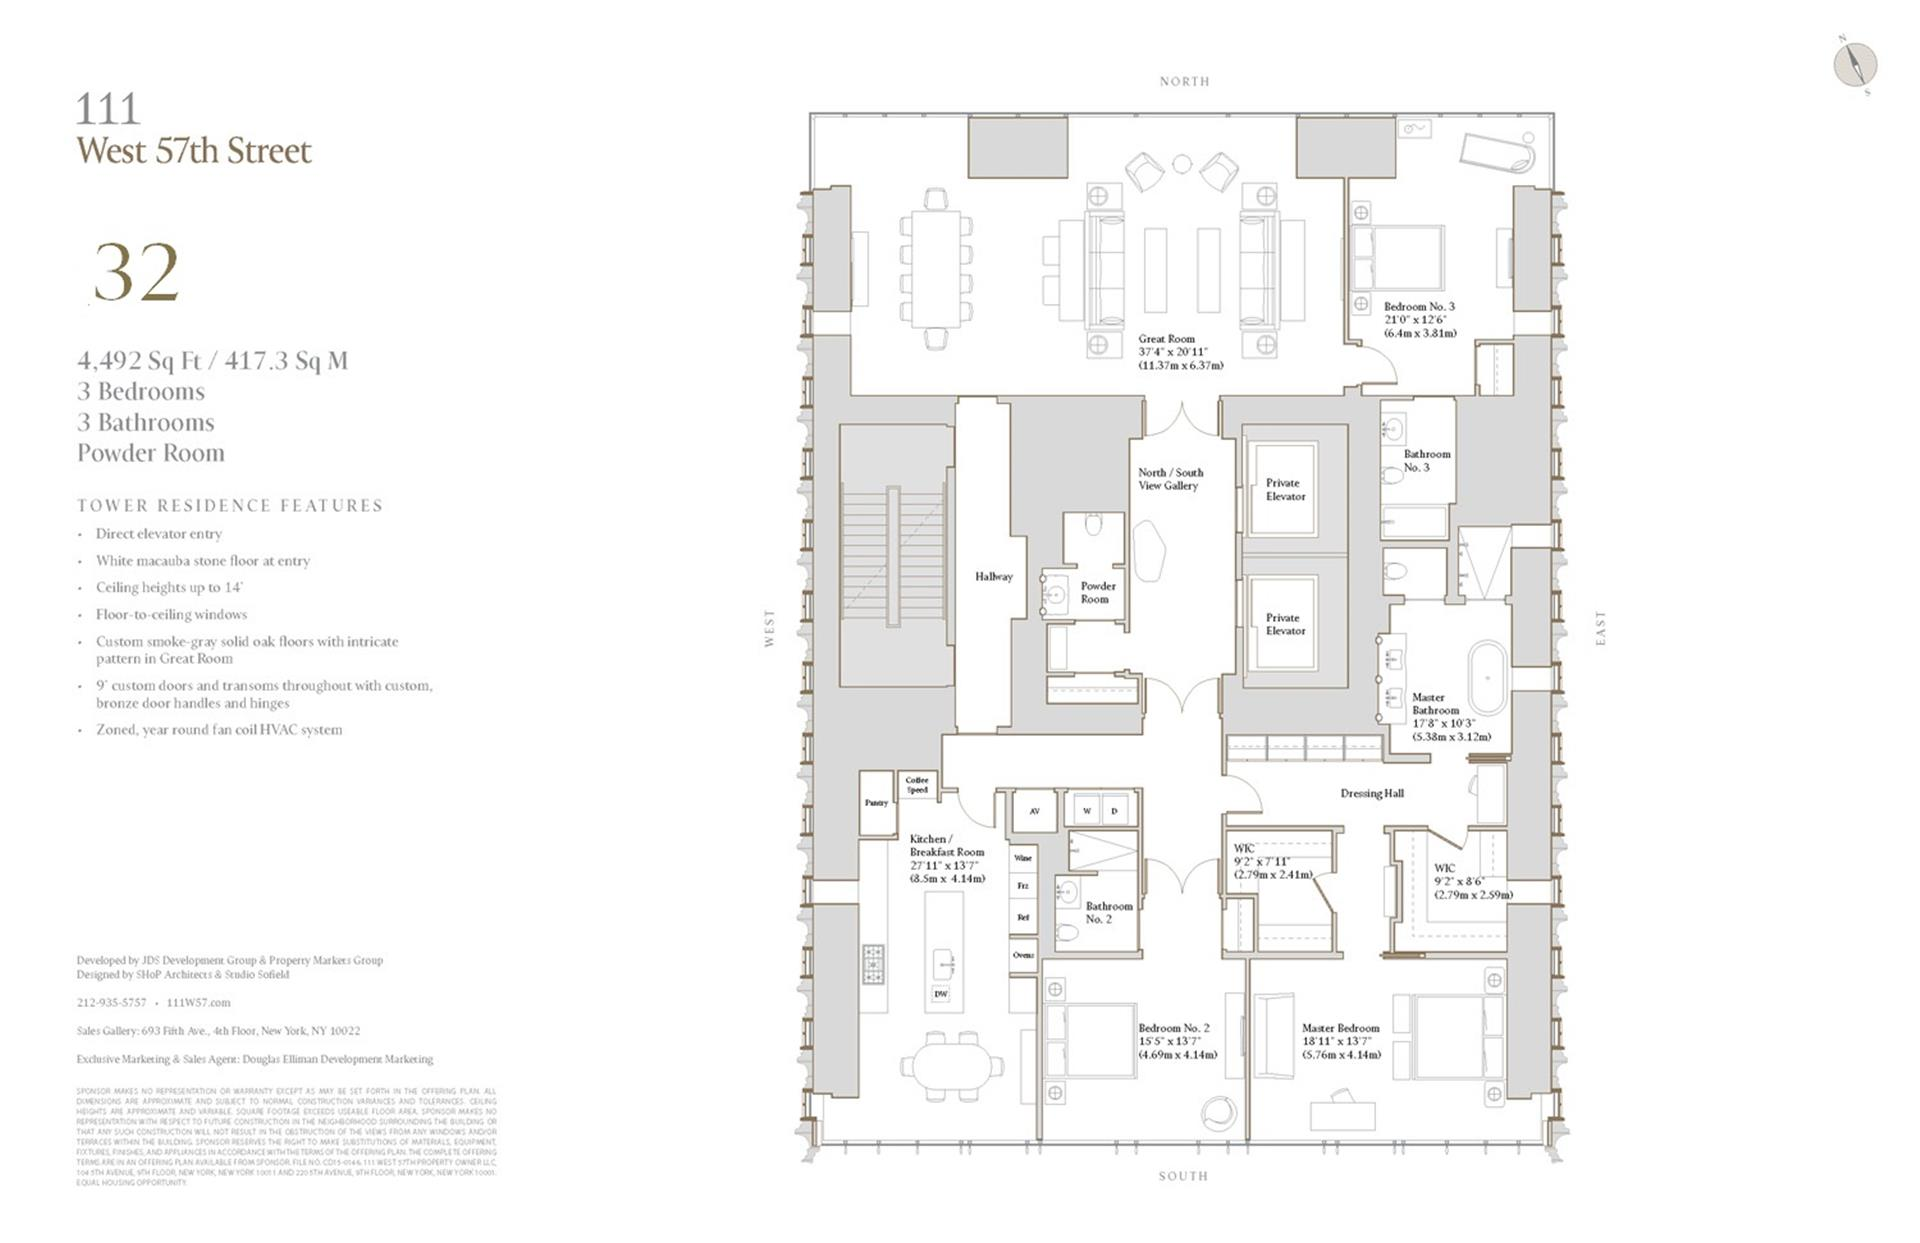 Floor plan of 111 West 57th Street, 32 - Central Park South, New York